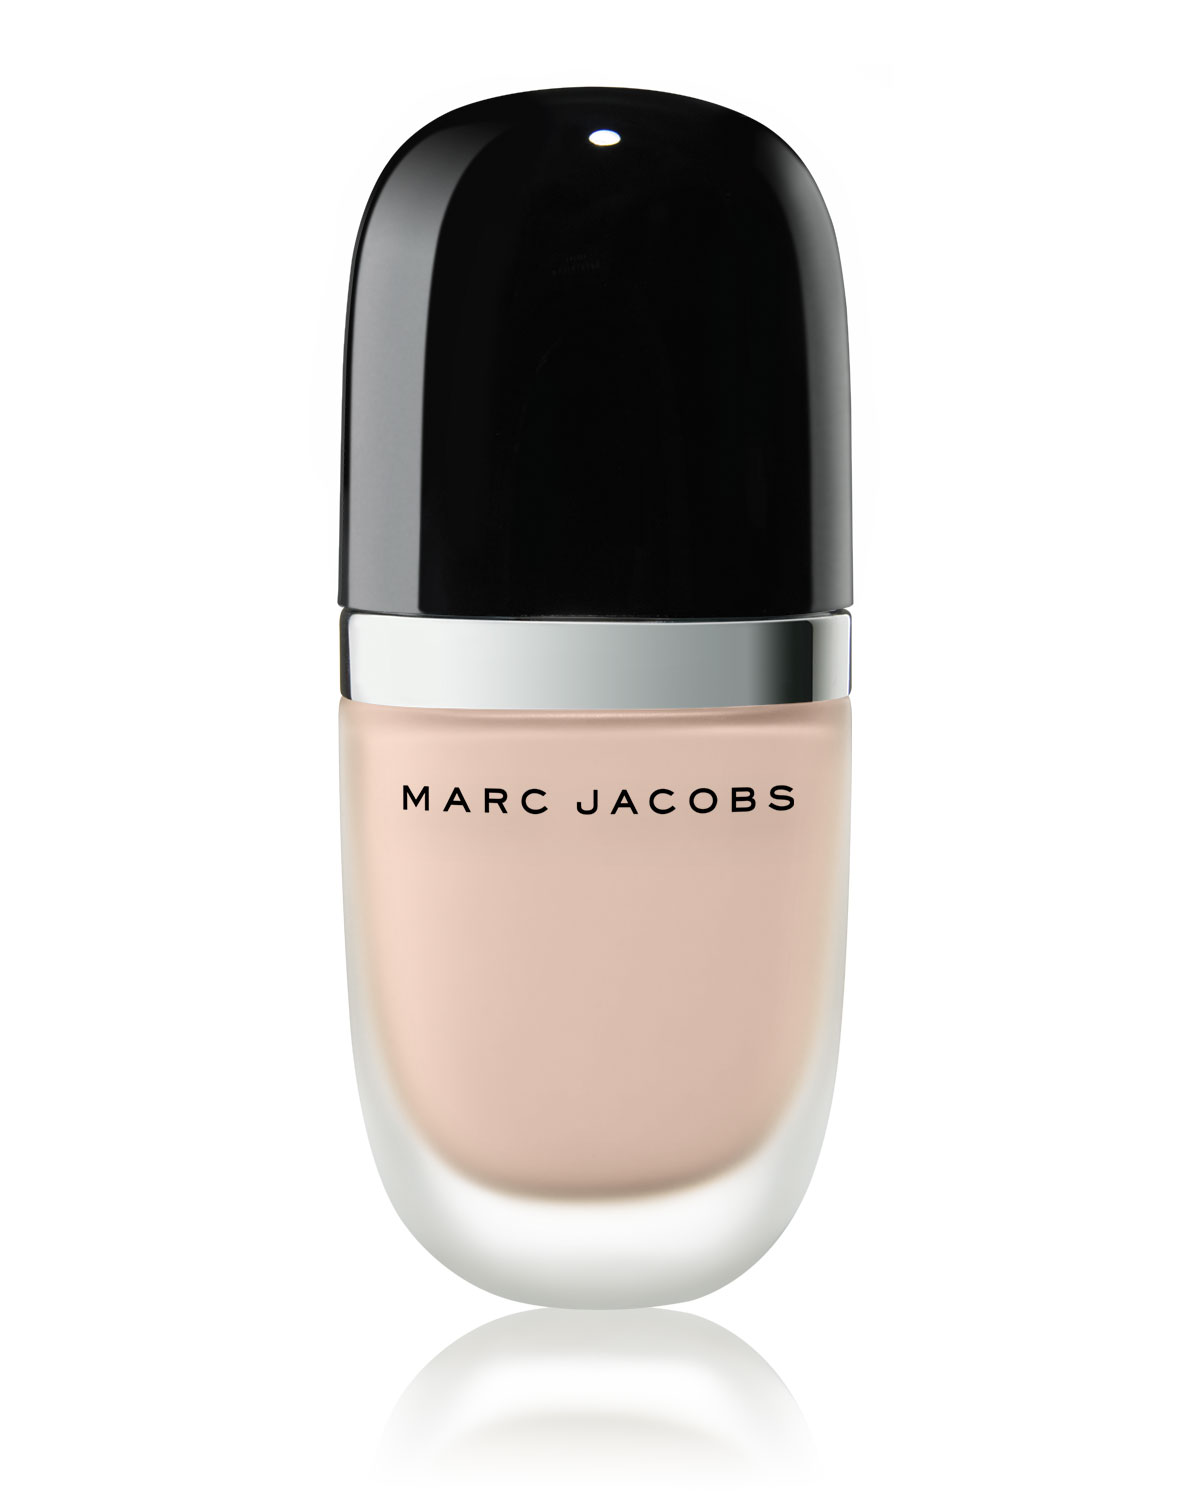 Genius Gel Super-Charged Oil-Free Foundation, 1.0 oz, 14 Ivory Medium - Marc Jacobs Beauty